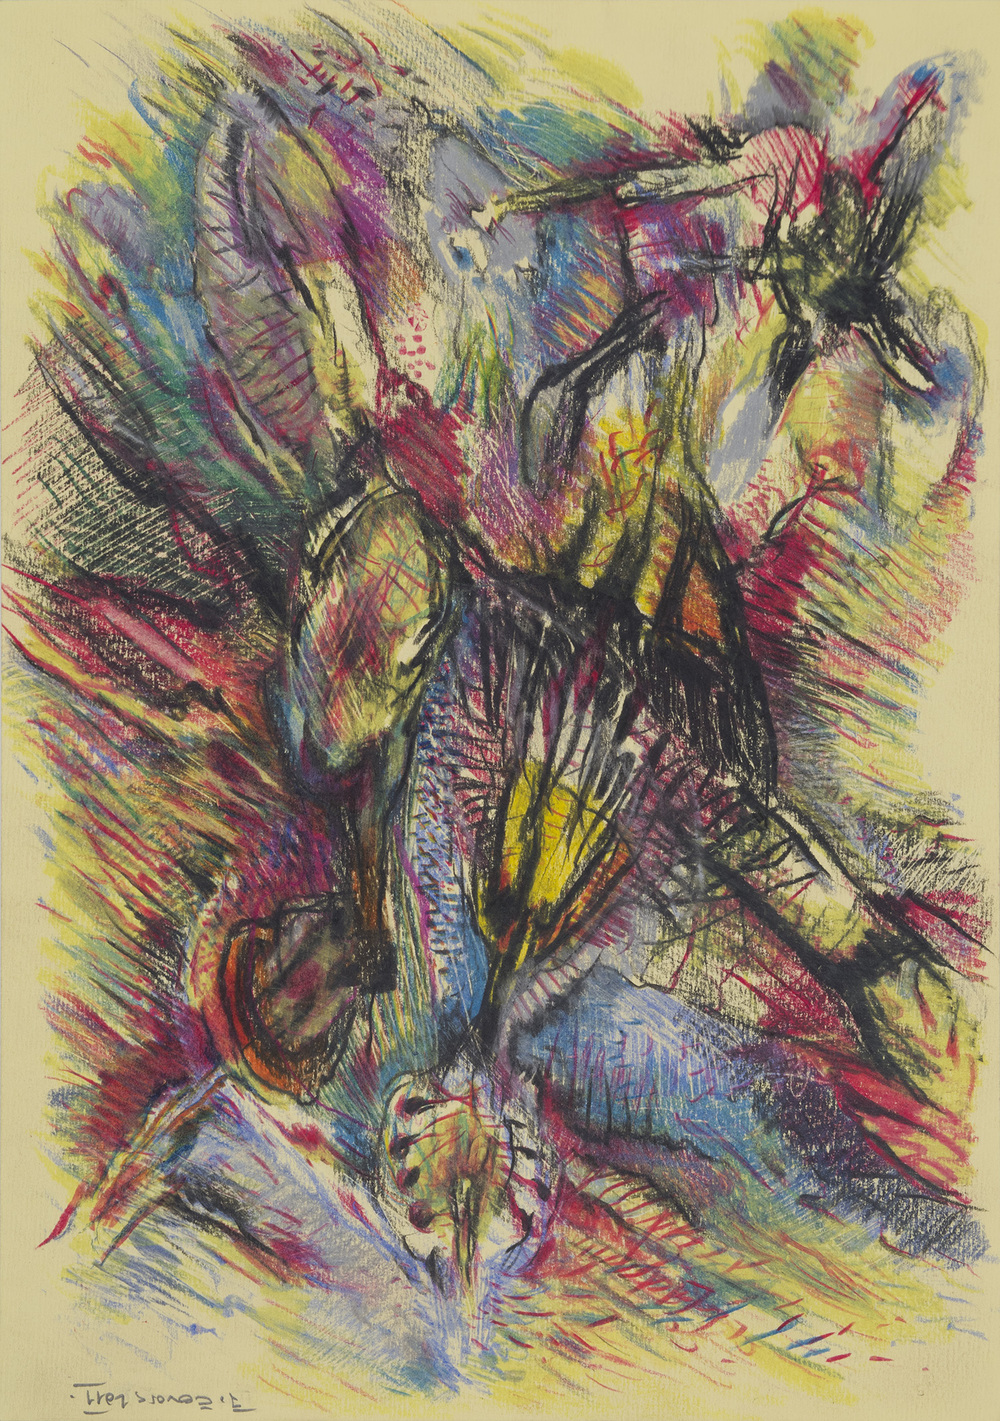 Jaroslav Čevora    Untitled  , 2011 Crayon on paper 13.39 x 9.45 inches 34 x 24 cm JCev 10